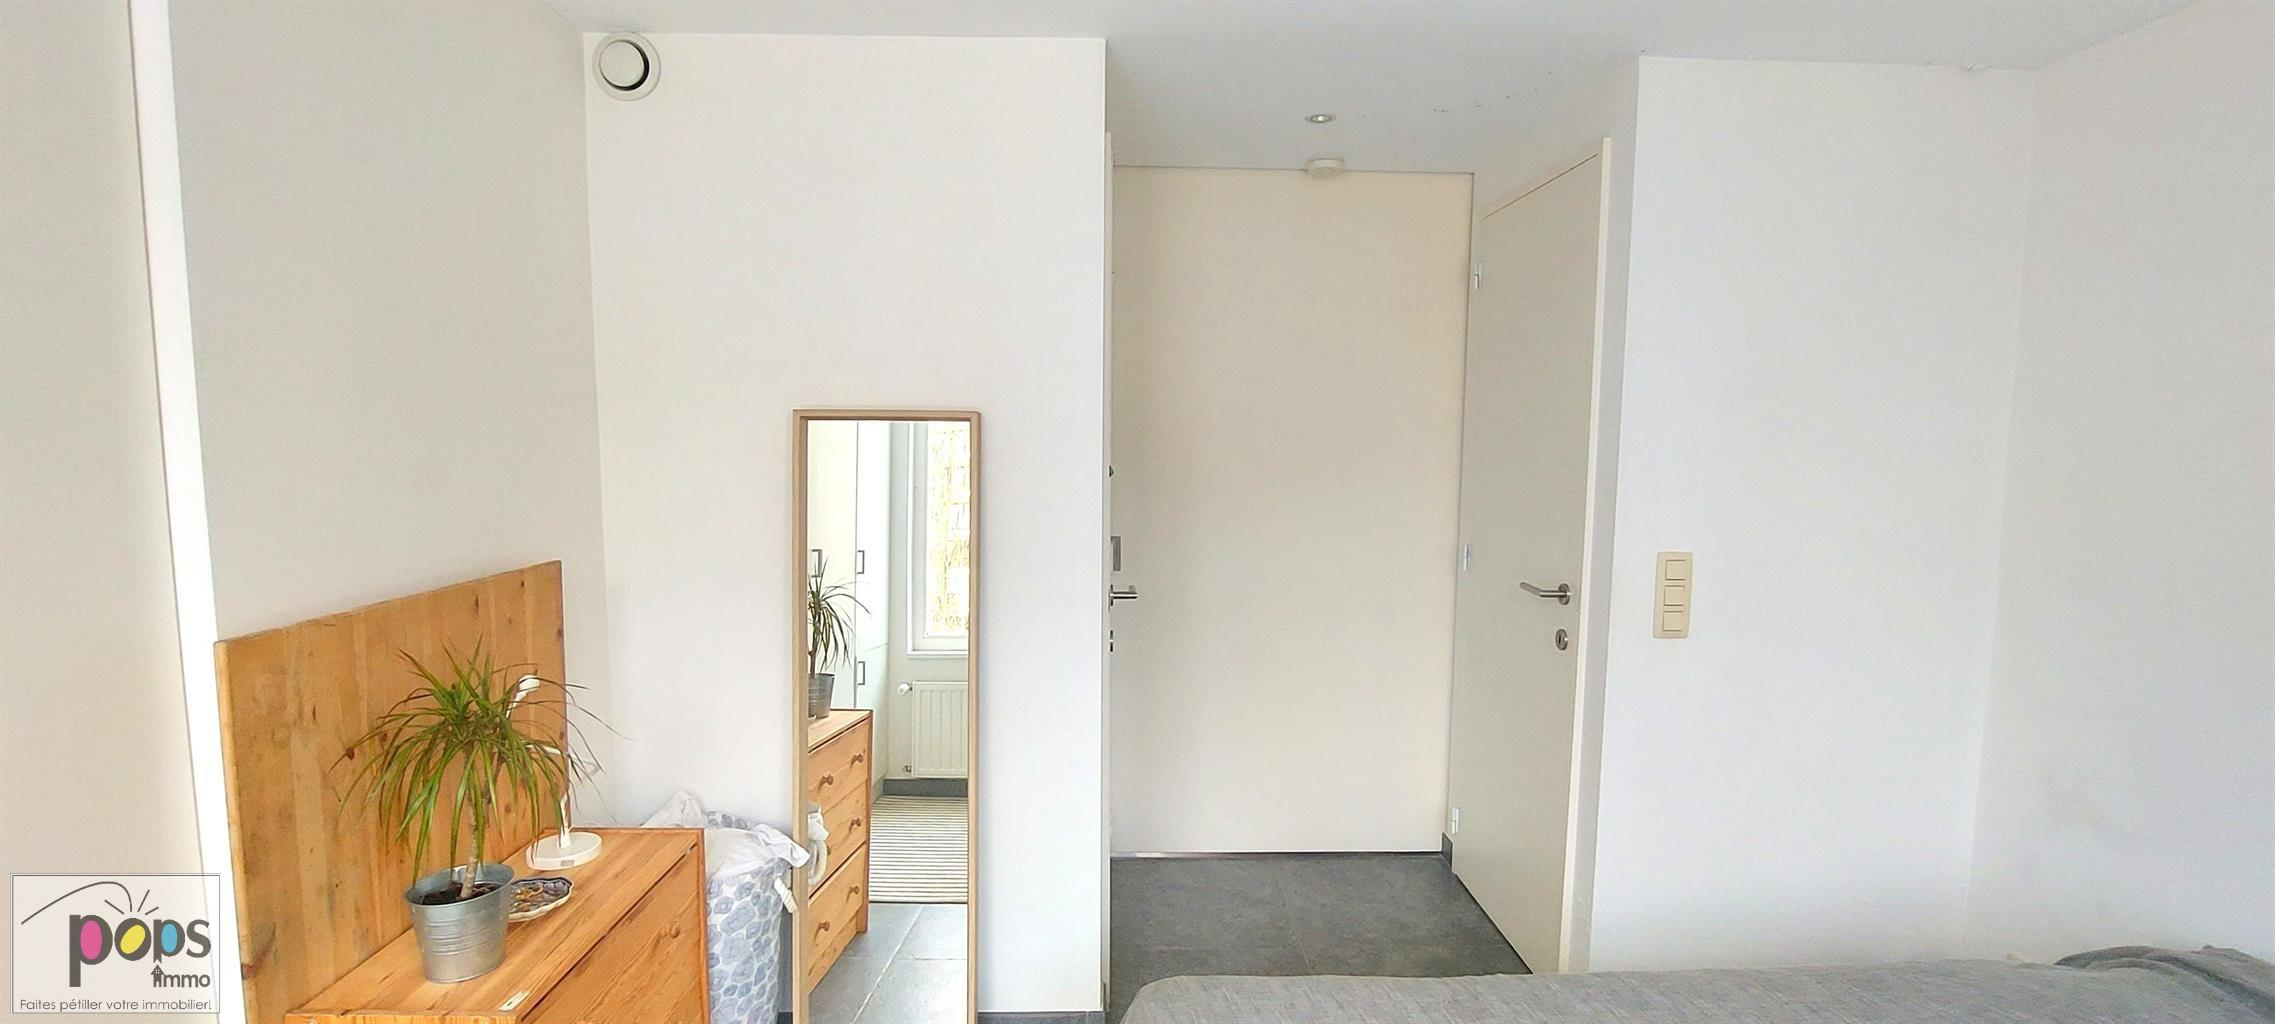 Appartement - Uccle - #4294712-8